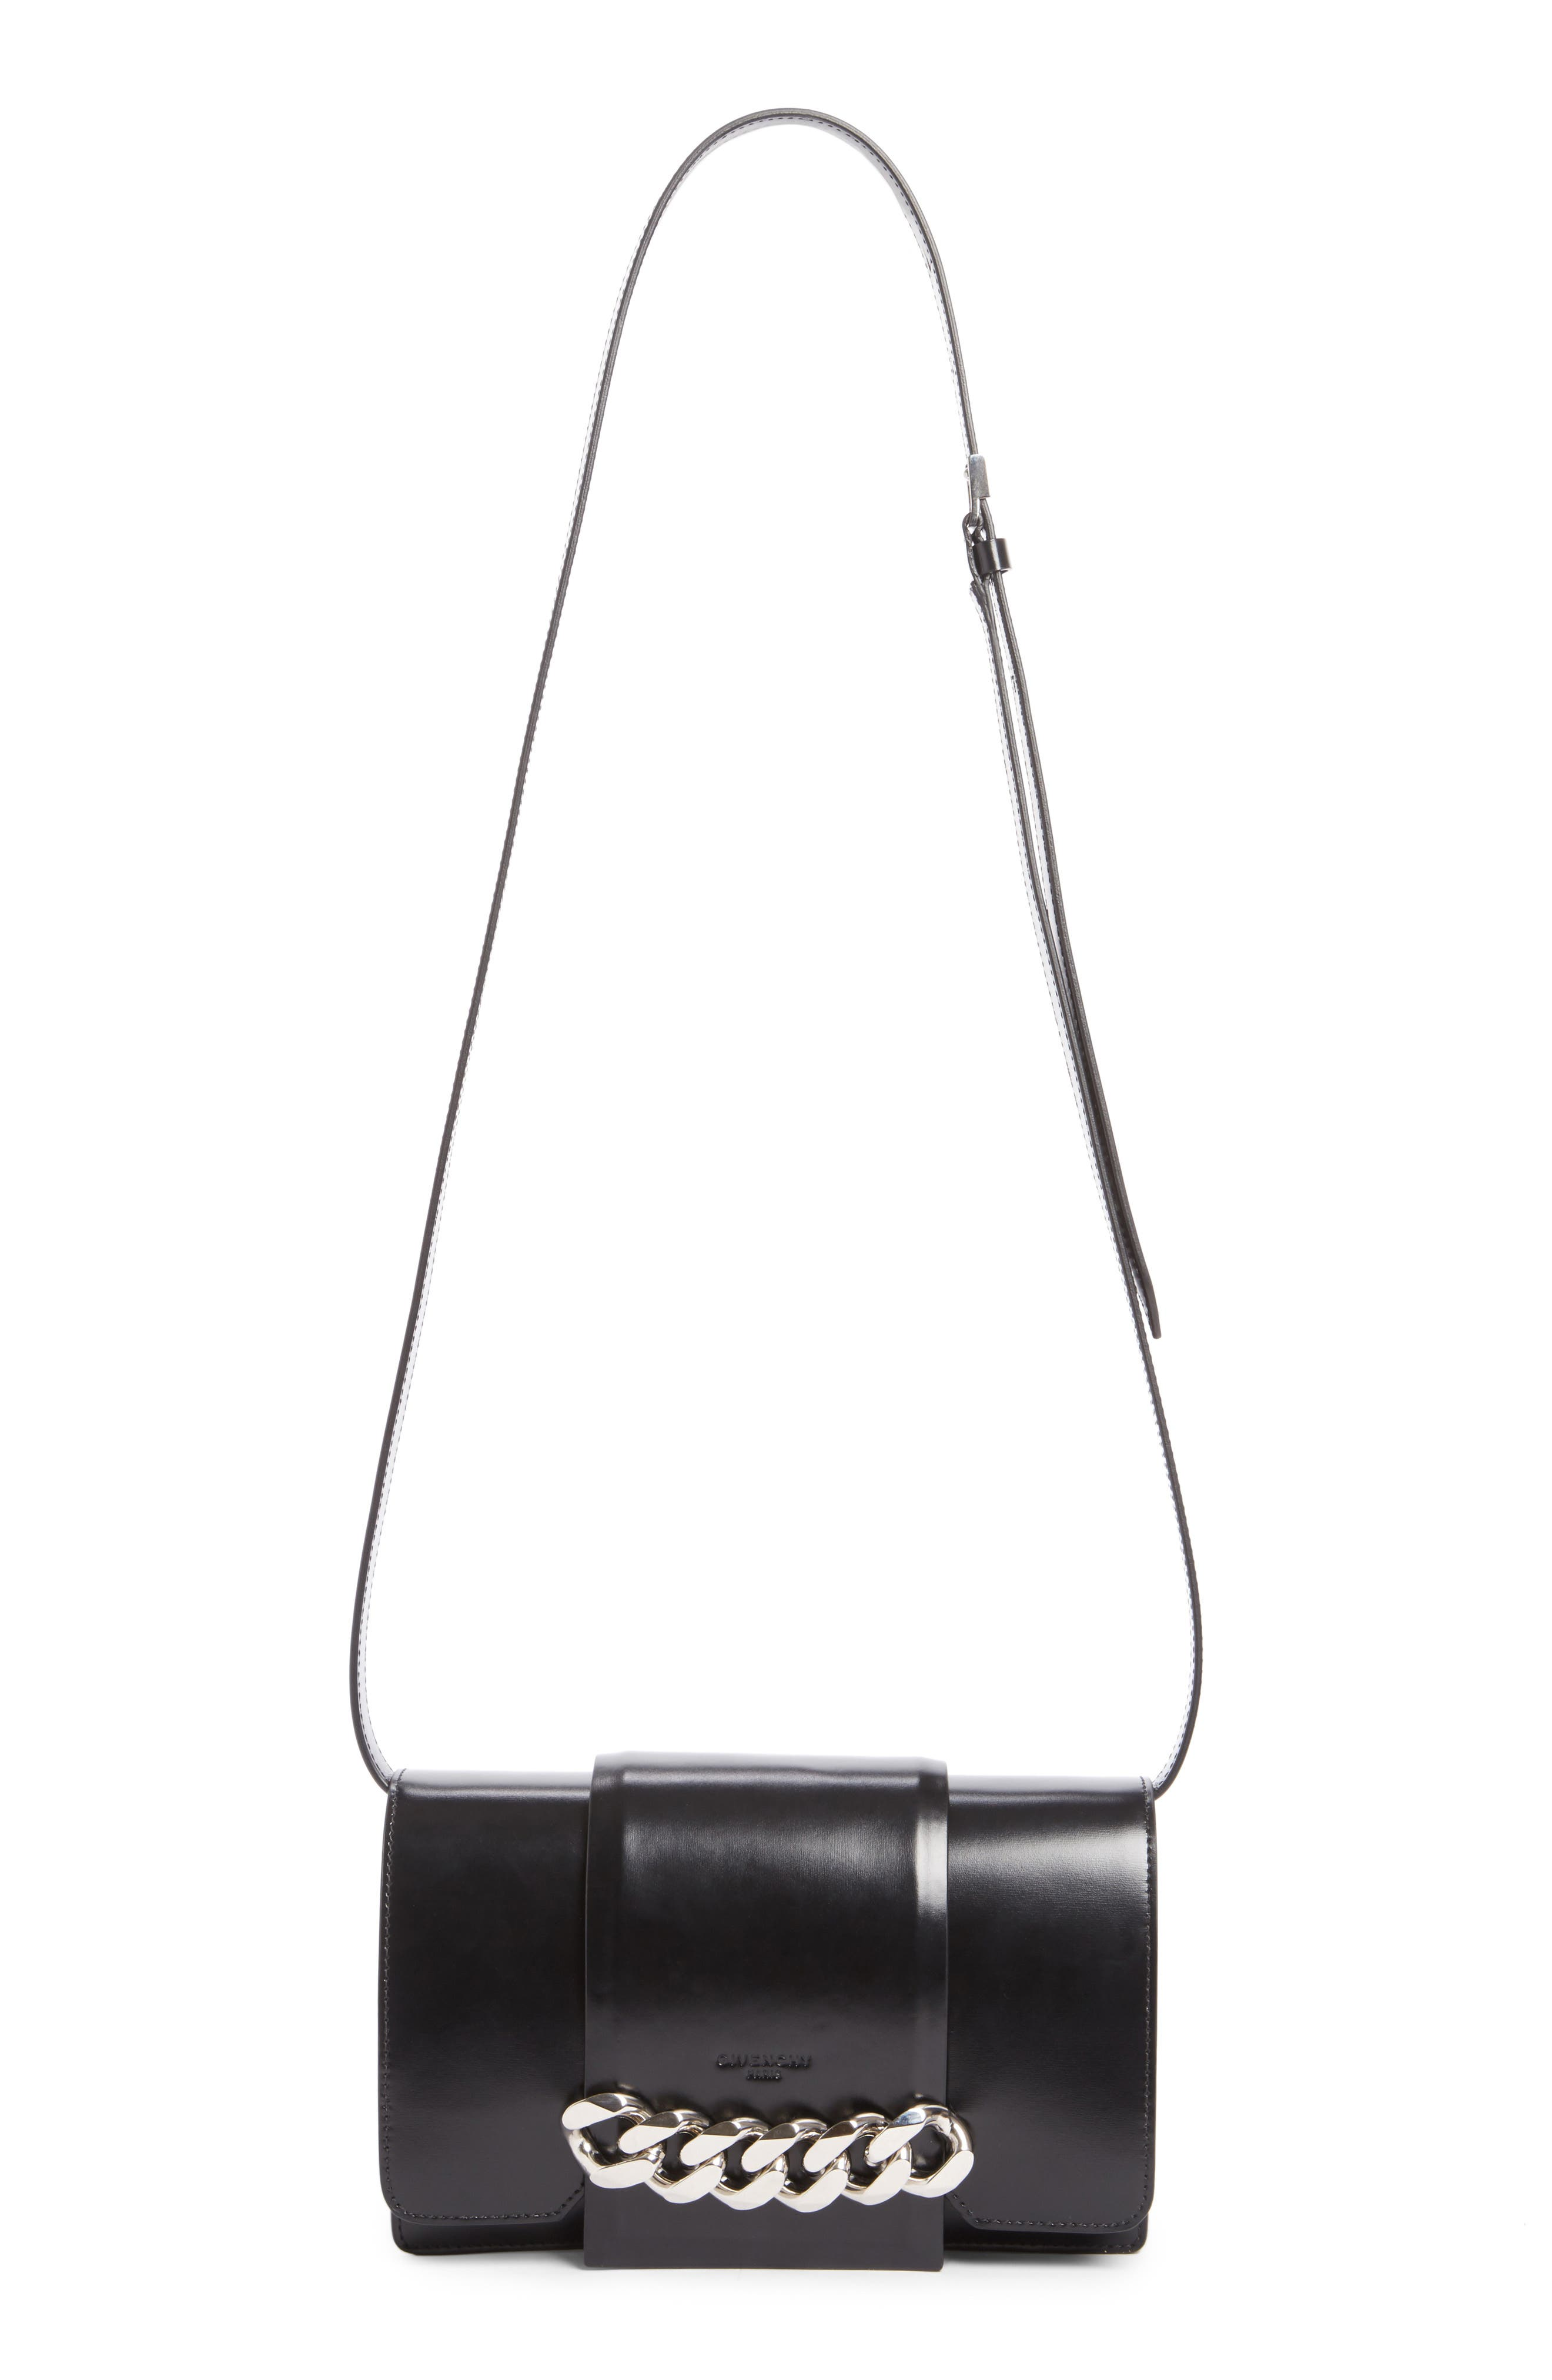 Givenchy Small Infinity Calfskin Leather Shoulder Bag